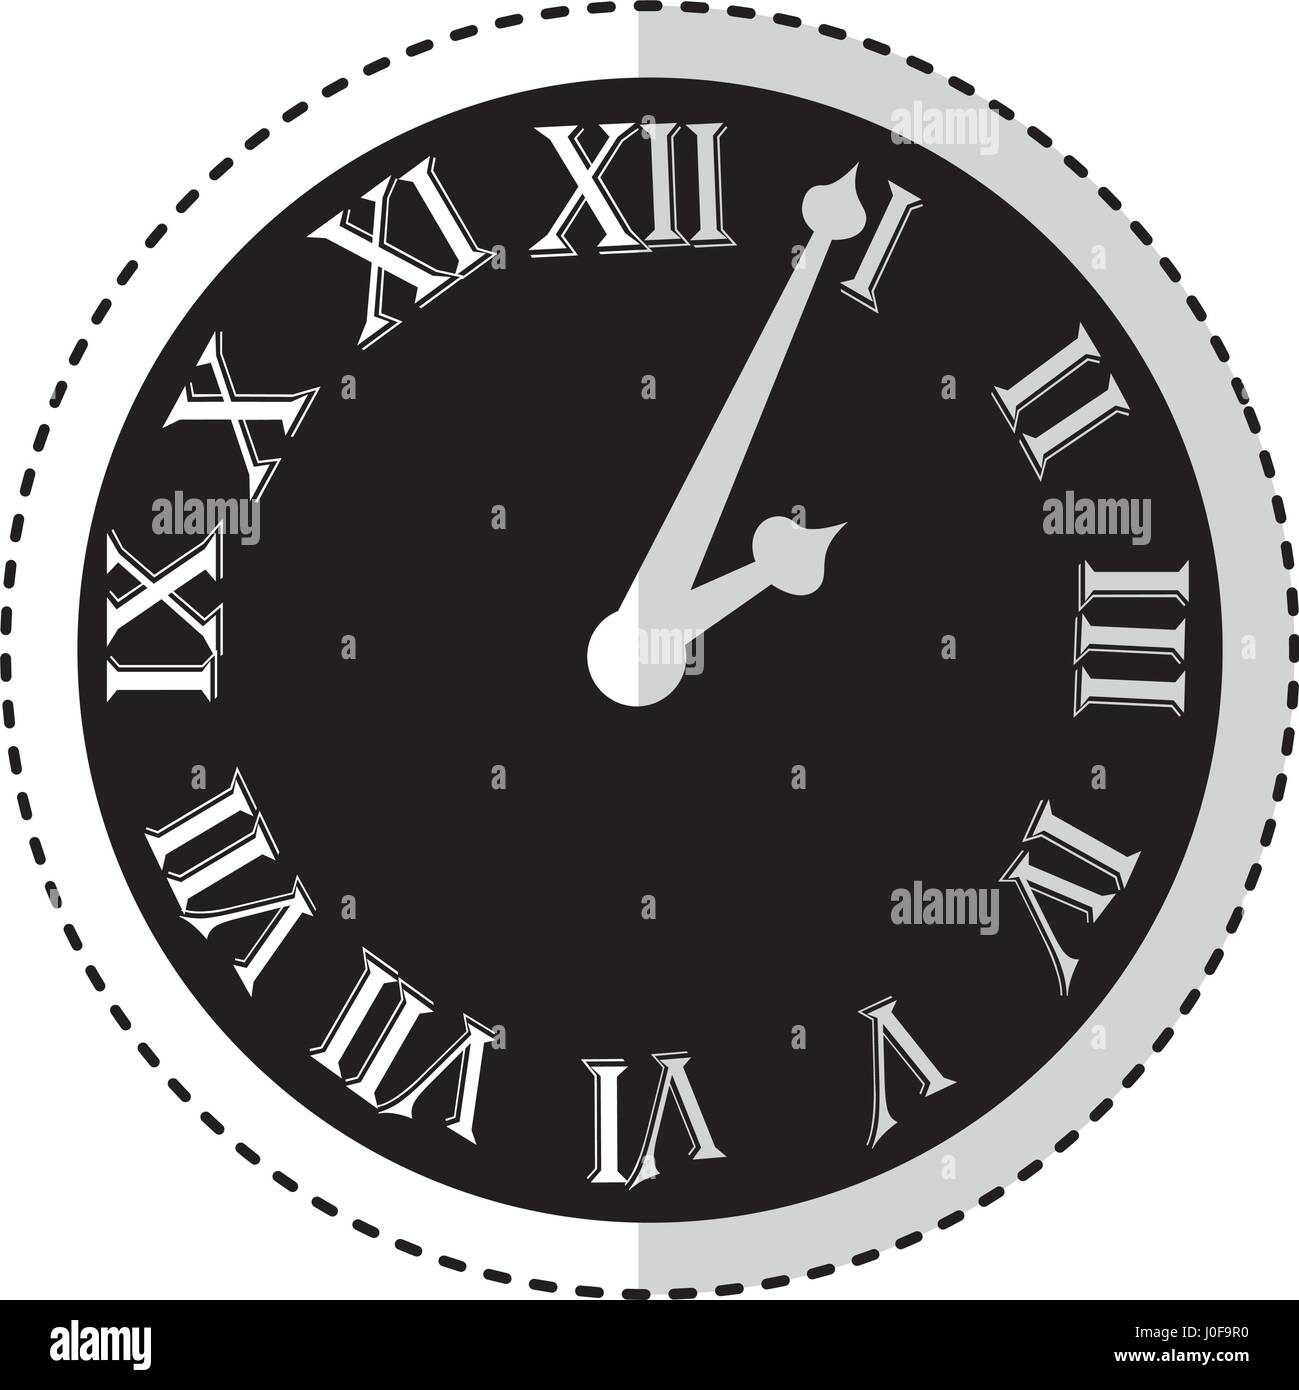 watch with roman numbers - Stock Image